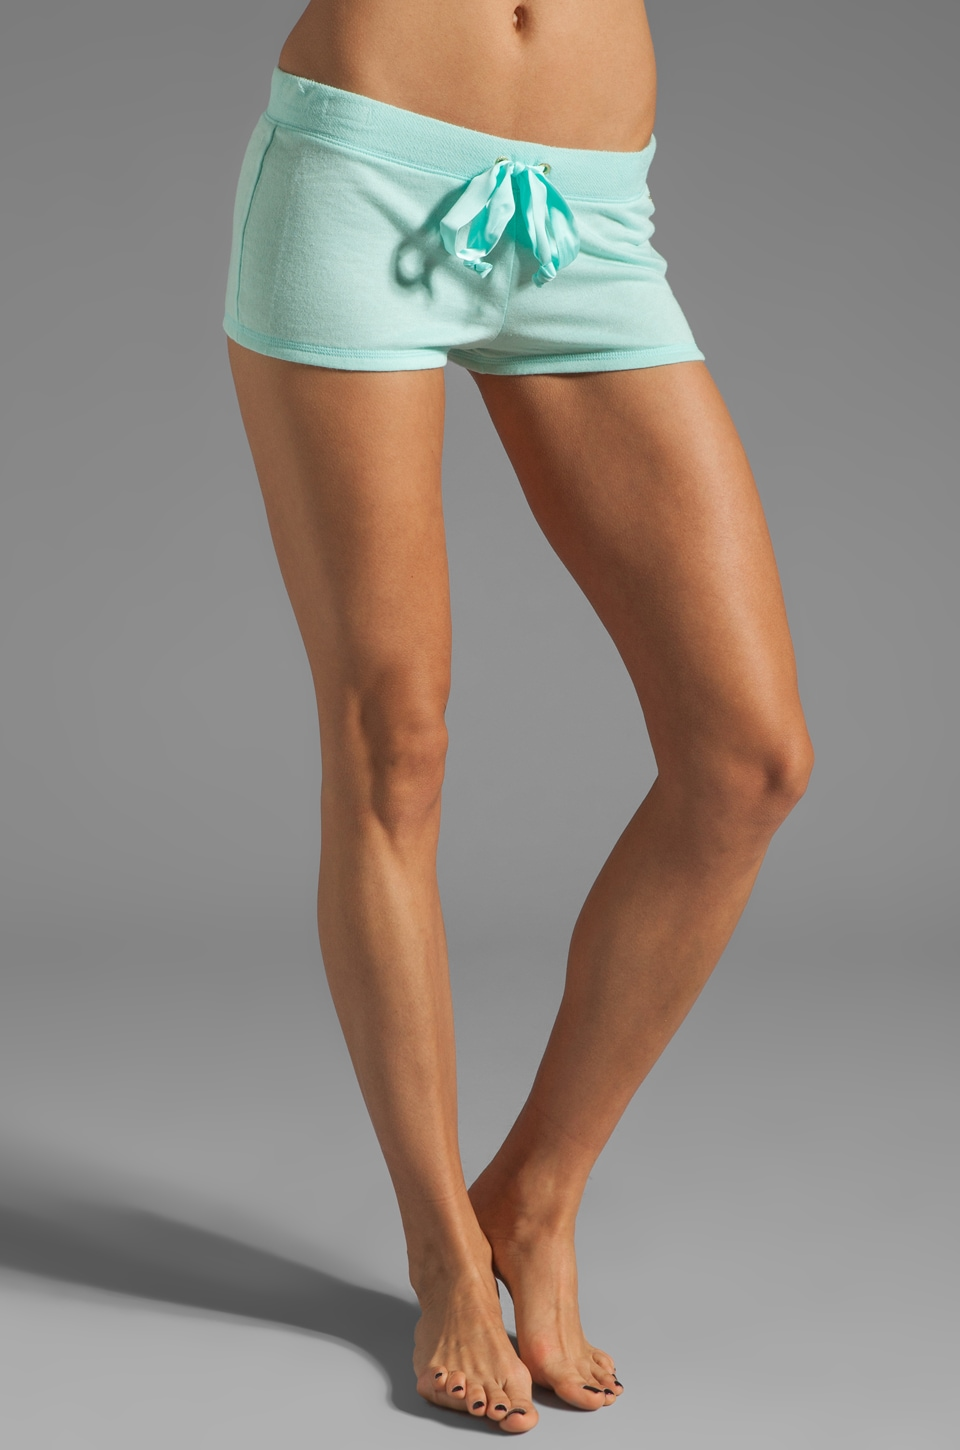 Juicy Couture French Terry Short in Monroe